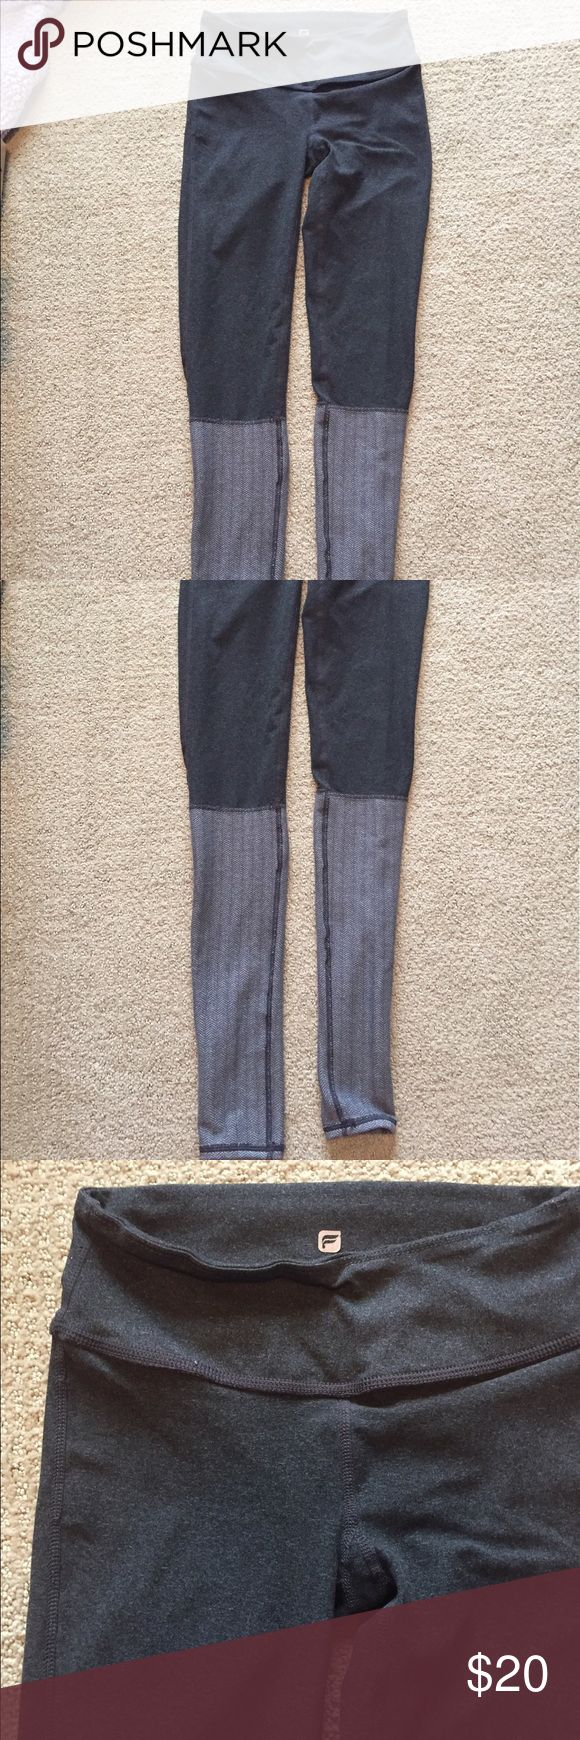 Fabletics two tone gray leggings. Two tone gray leggings with a herringbone pattern on the bottom half from fabletics. they are gently used but in great condition! there's no size on them, but they fit like an extra small. Fabletics Pants Leggings